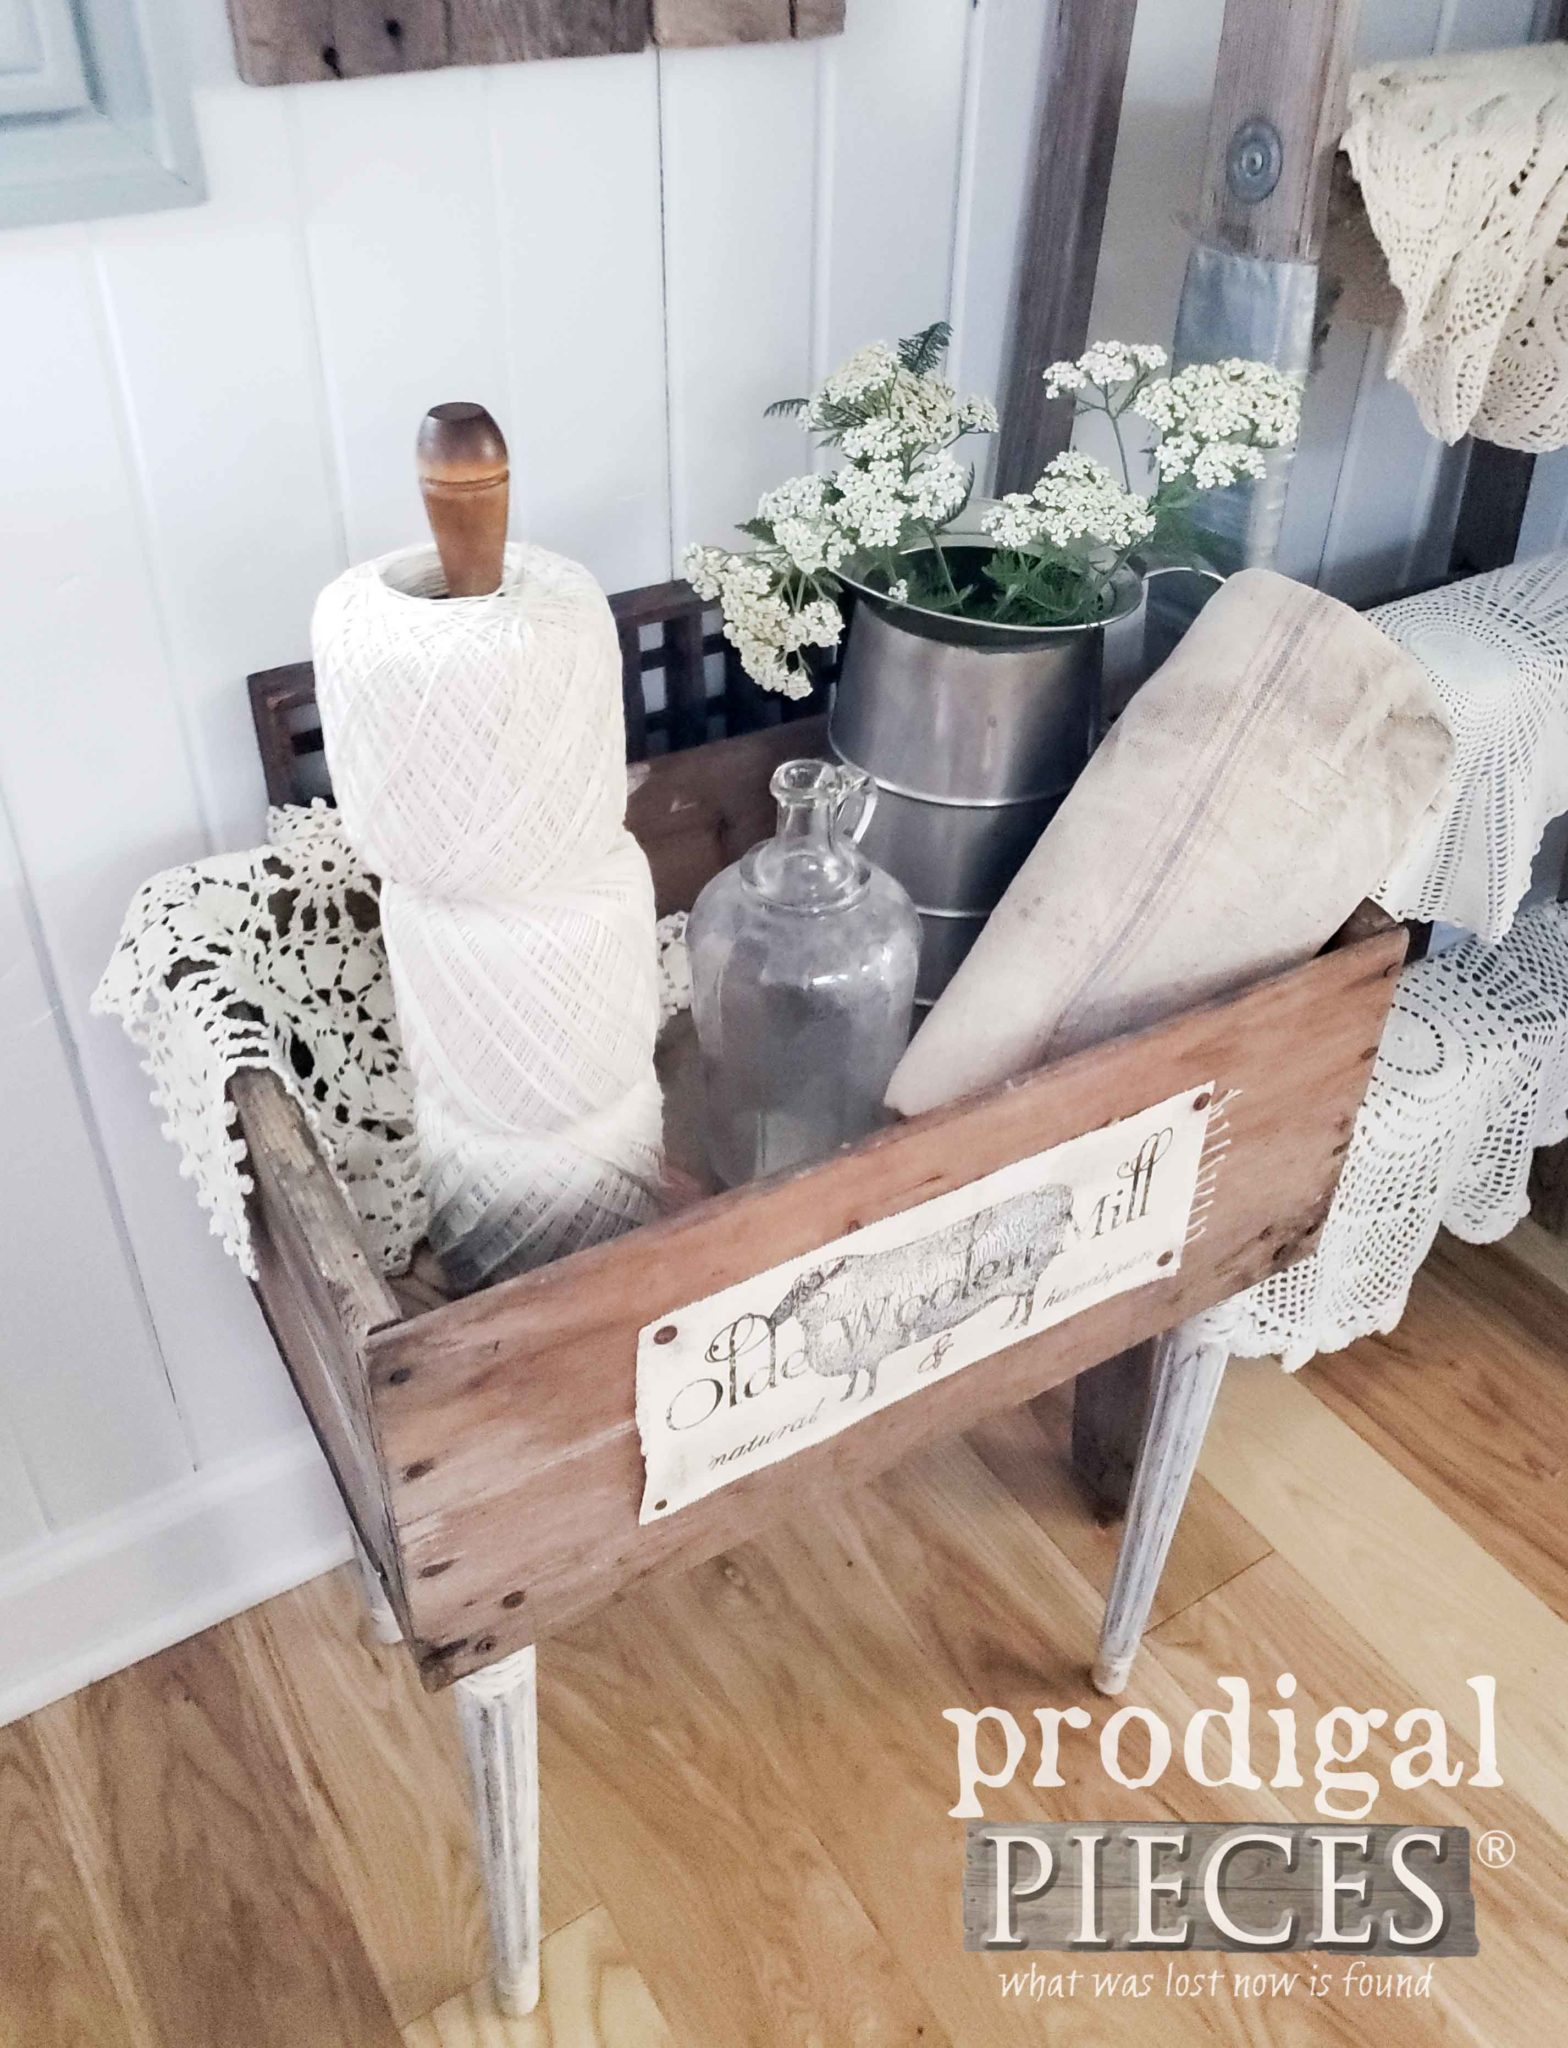 Antique Crate Turned Farmhouse Table by Larissa of Prodigal Pieces | prodigalpieces.com #prodigalpieces #farmhouse #antique home #homedecor